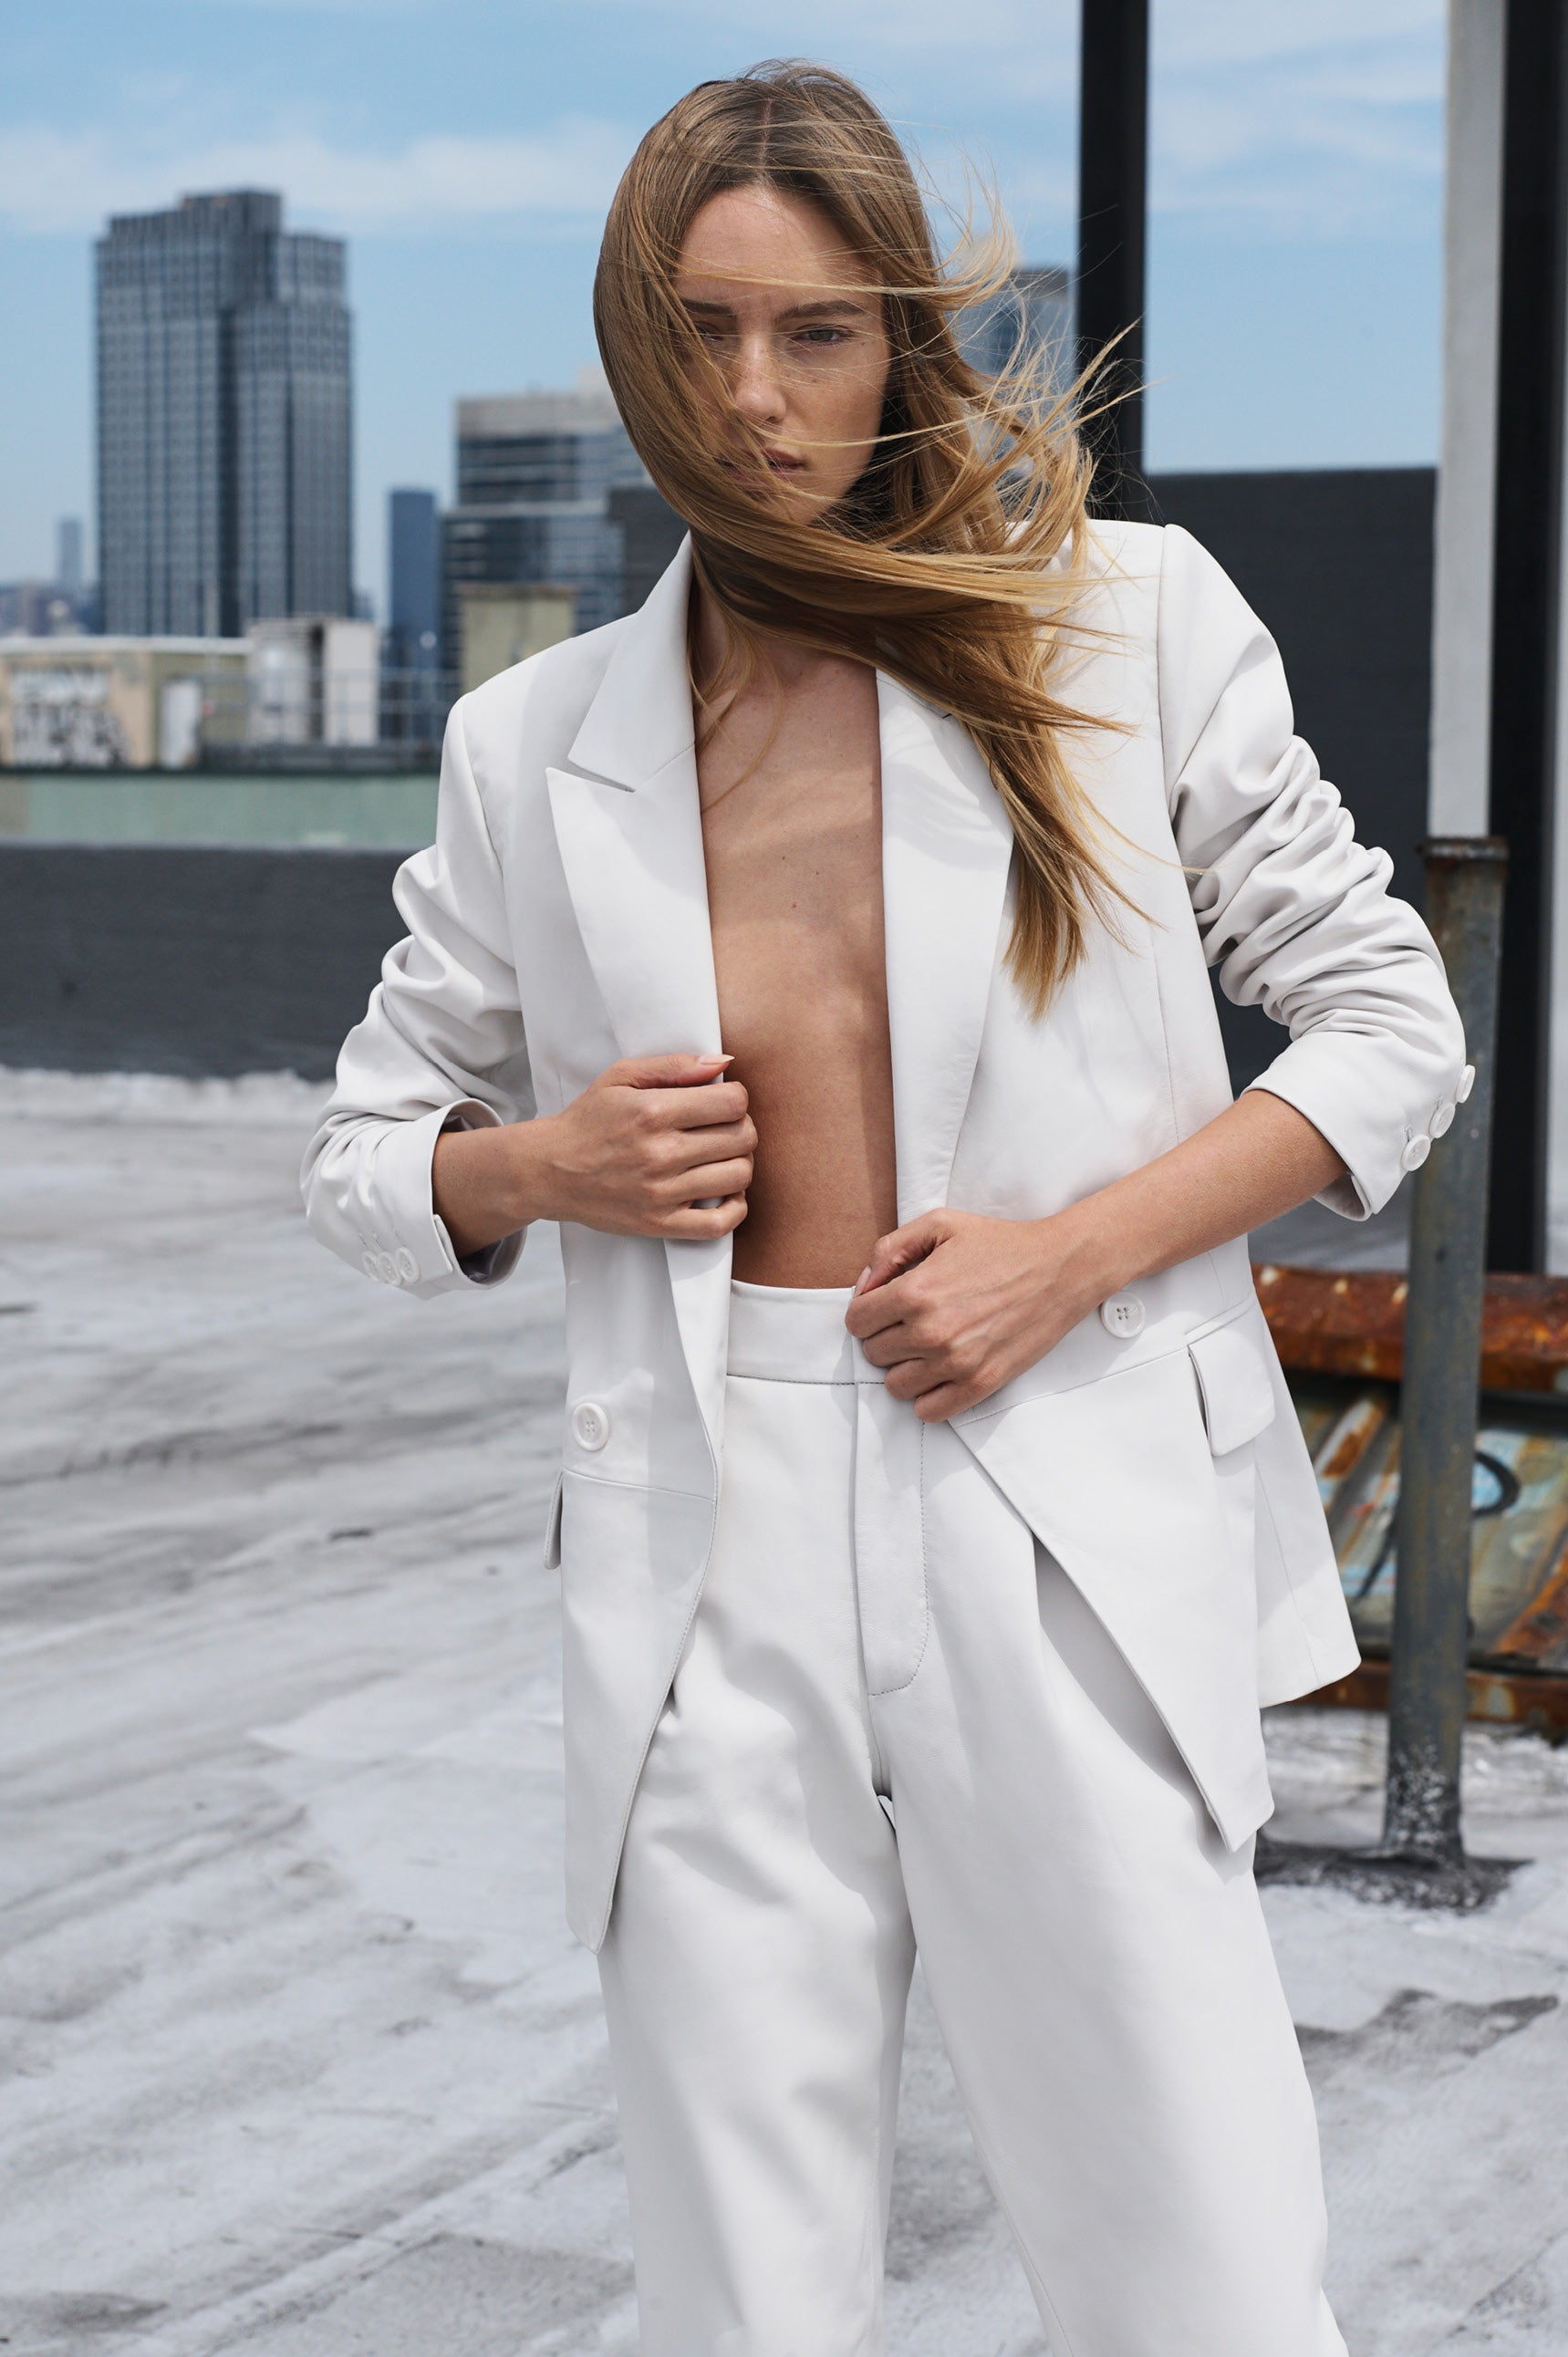 "<p><a href=""/products/grace-blazer-white"" title=""Grace Blazer - White"">GRACE BLAZER</a></p>"